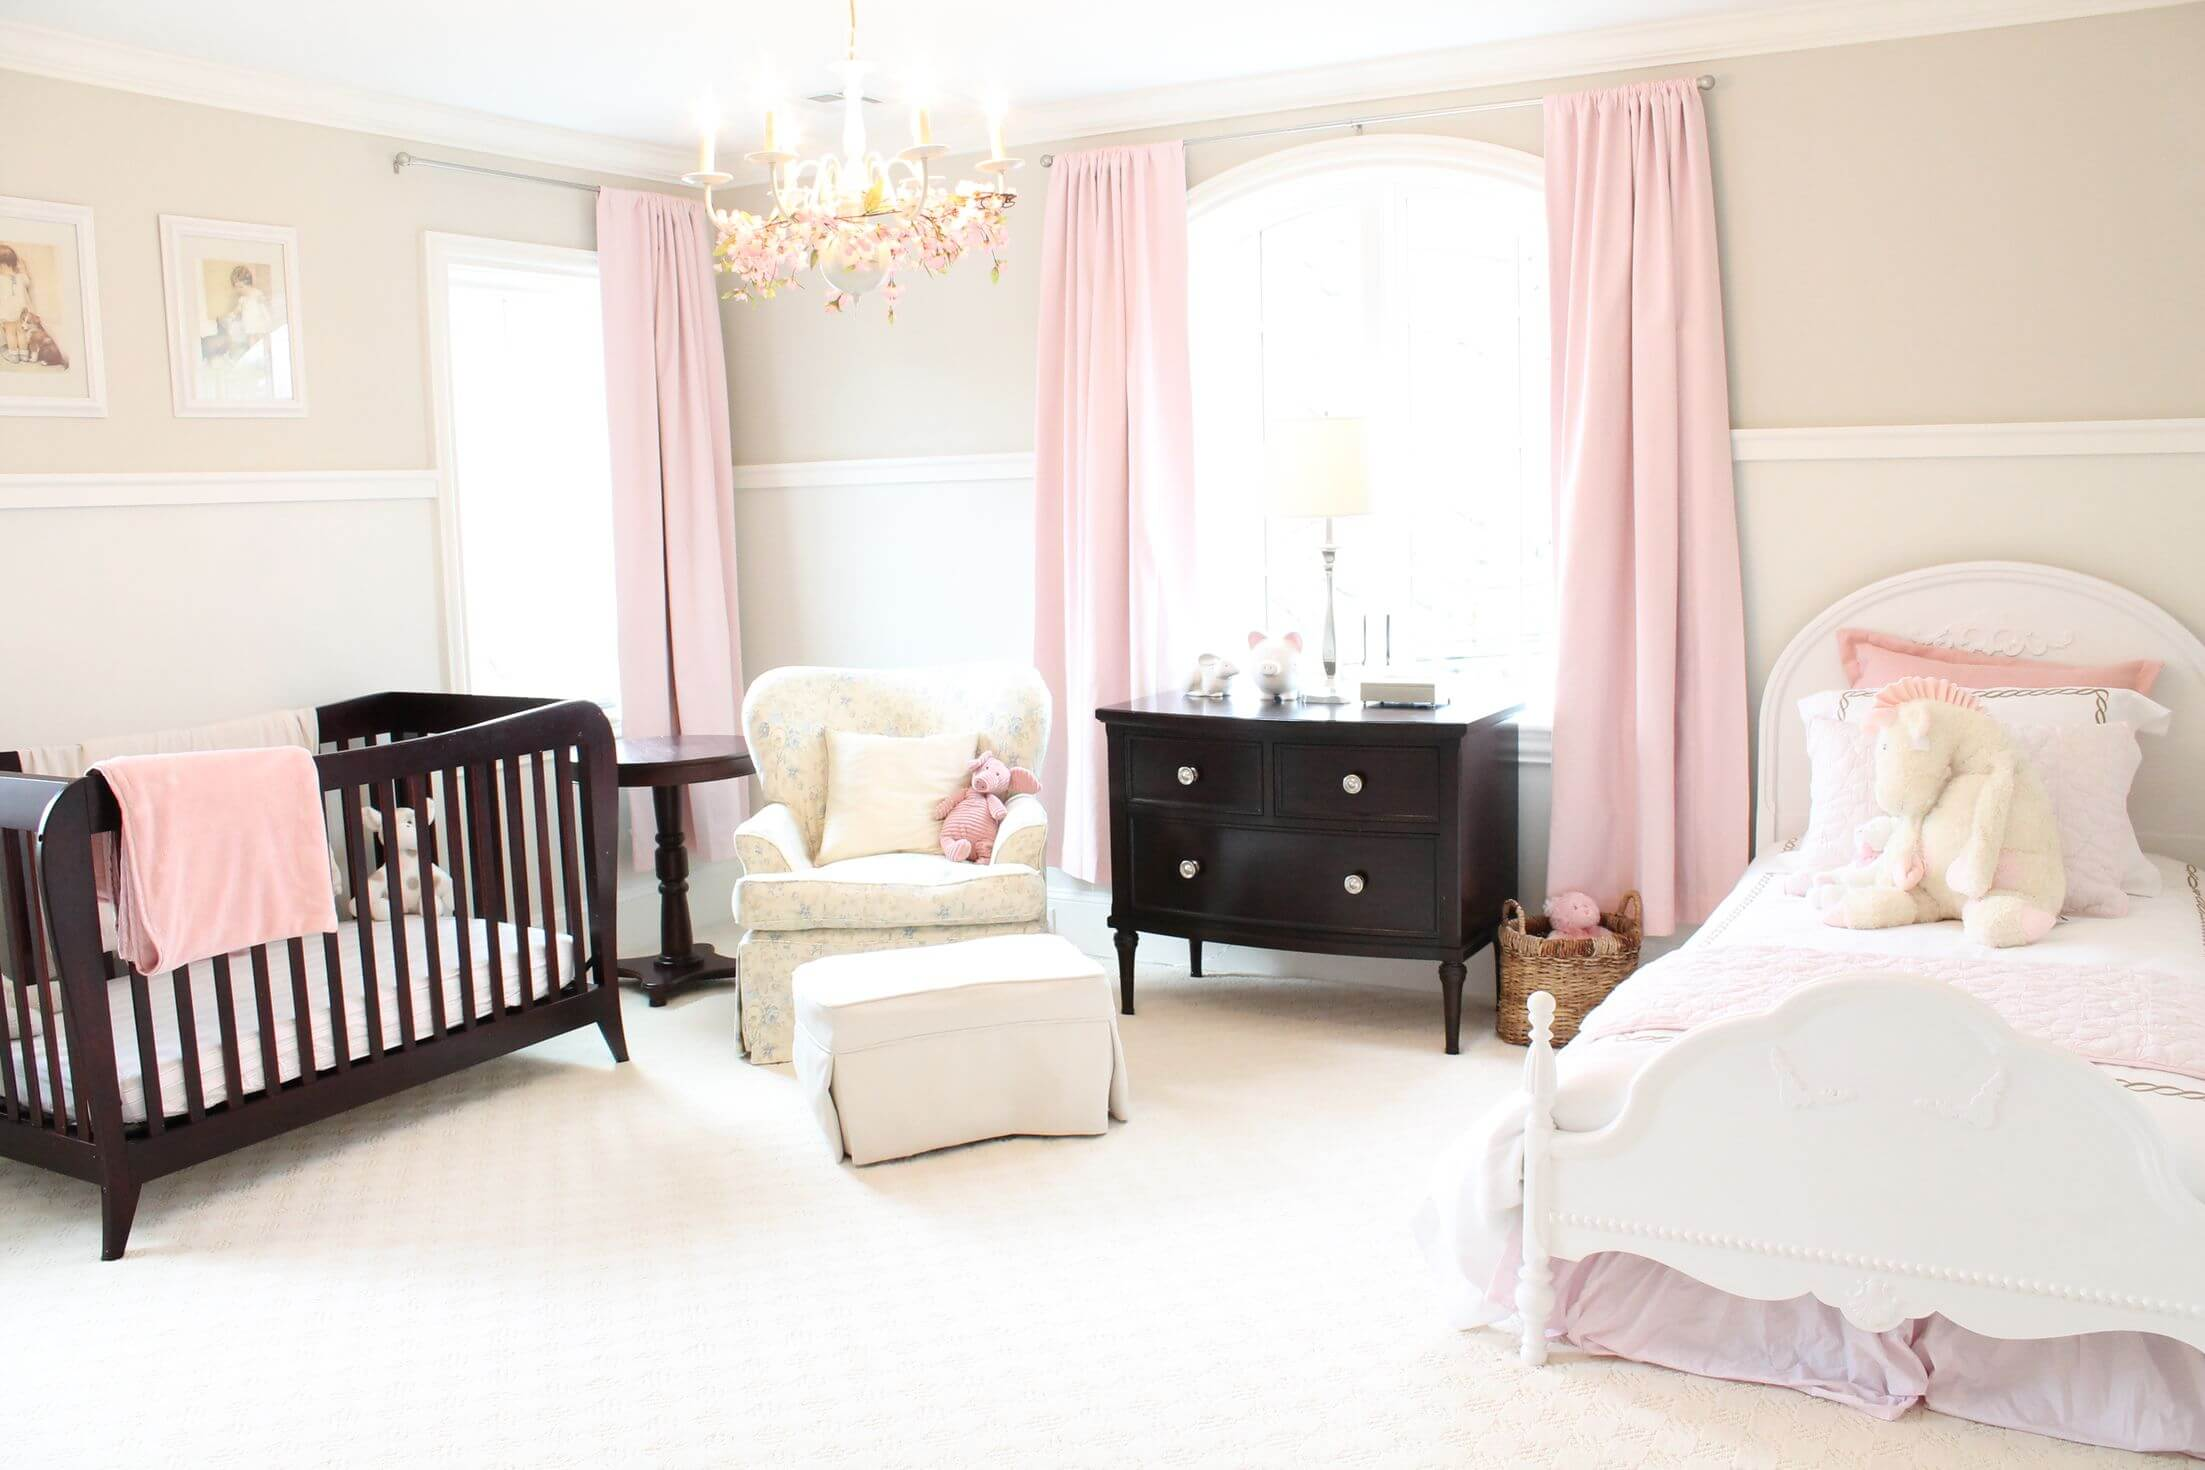 Baby Girl Furniture : Pure white mixed with subtle splashes of pink in this large nursery ...